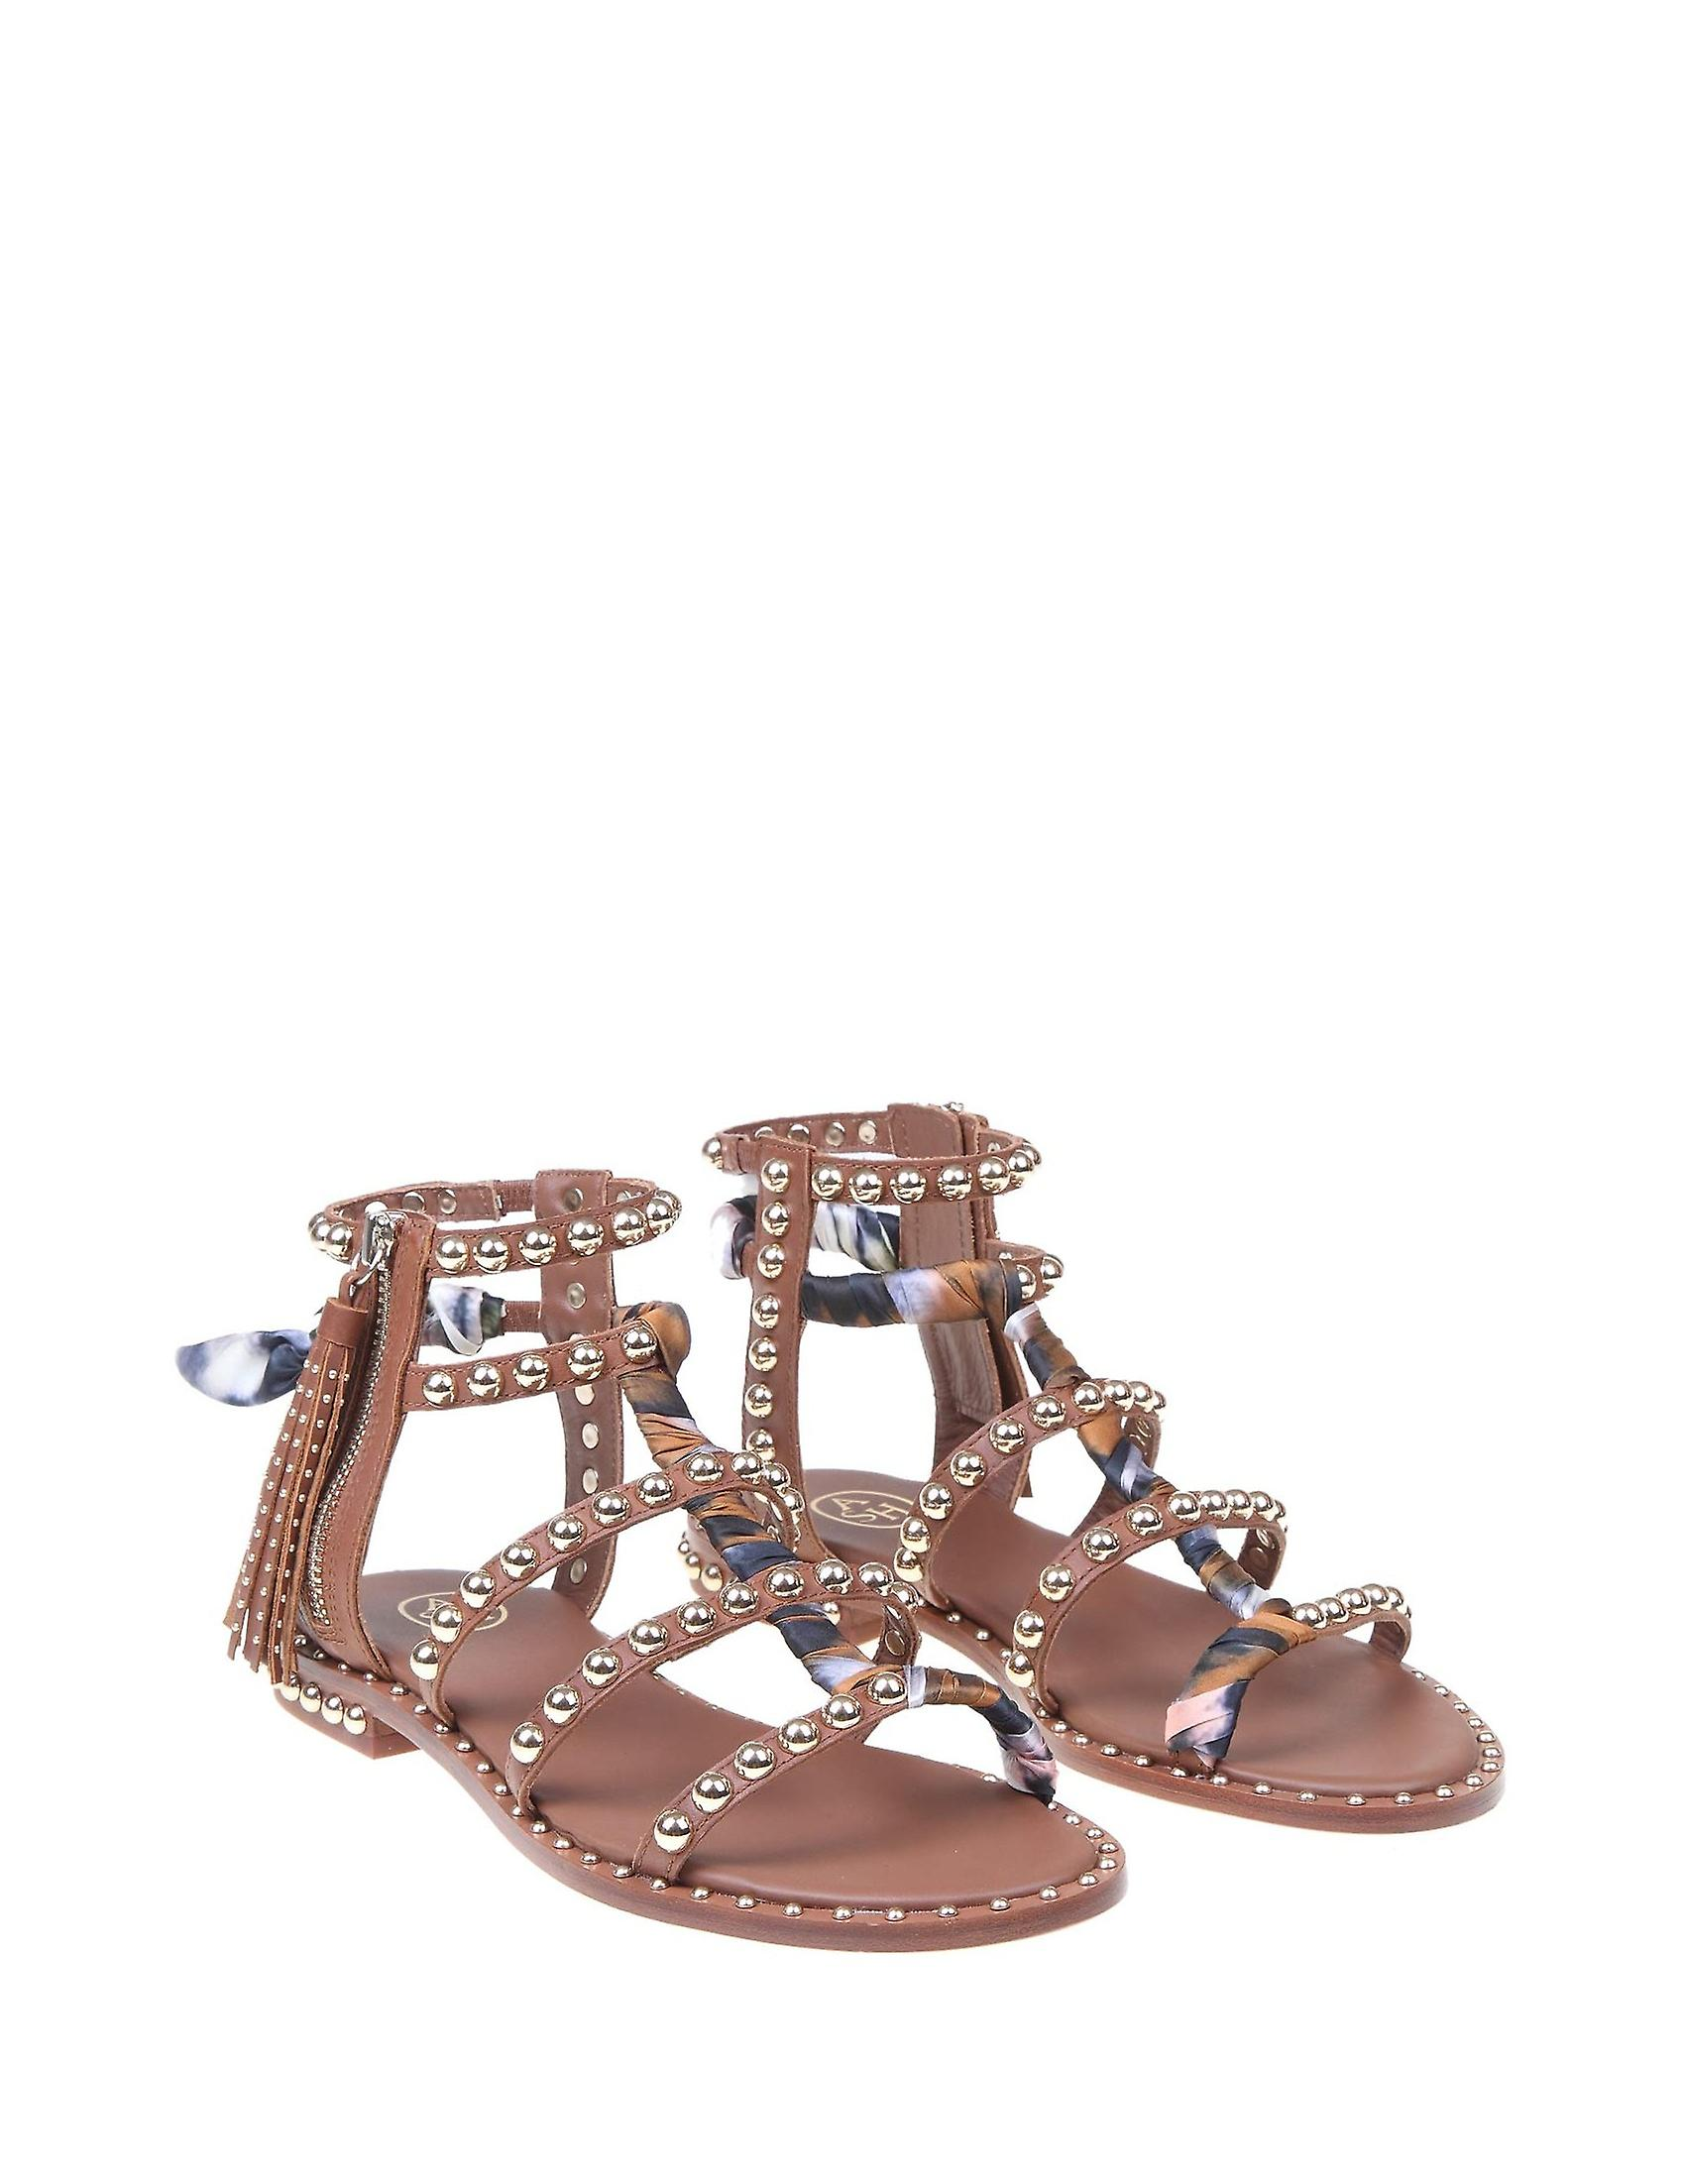 Ash Pareo02 Women's Brown Leather Sandals